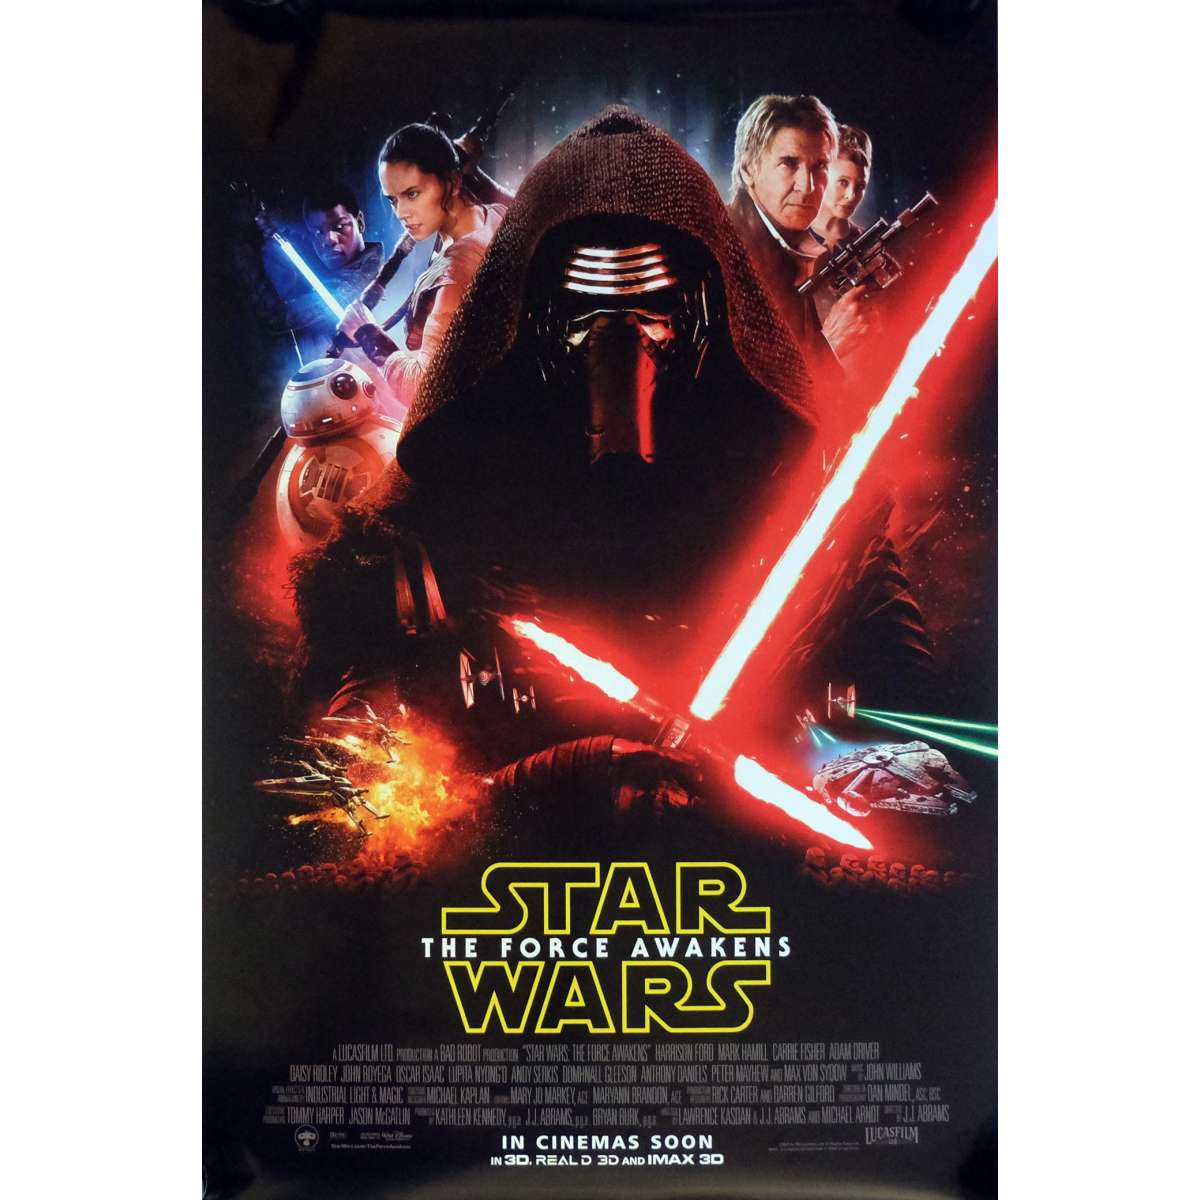 star wars the force awakens vii 7 movie poster ds intl mod b